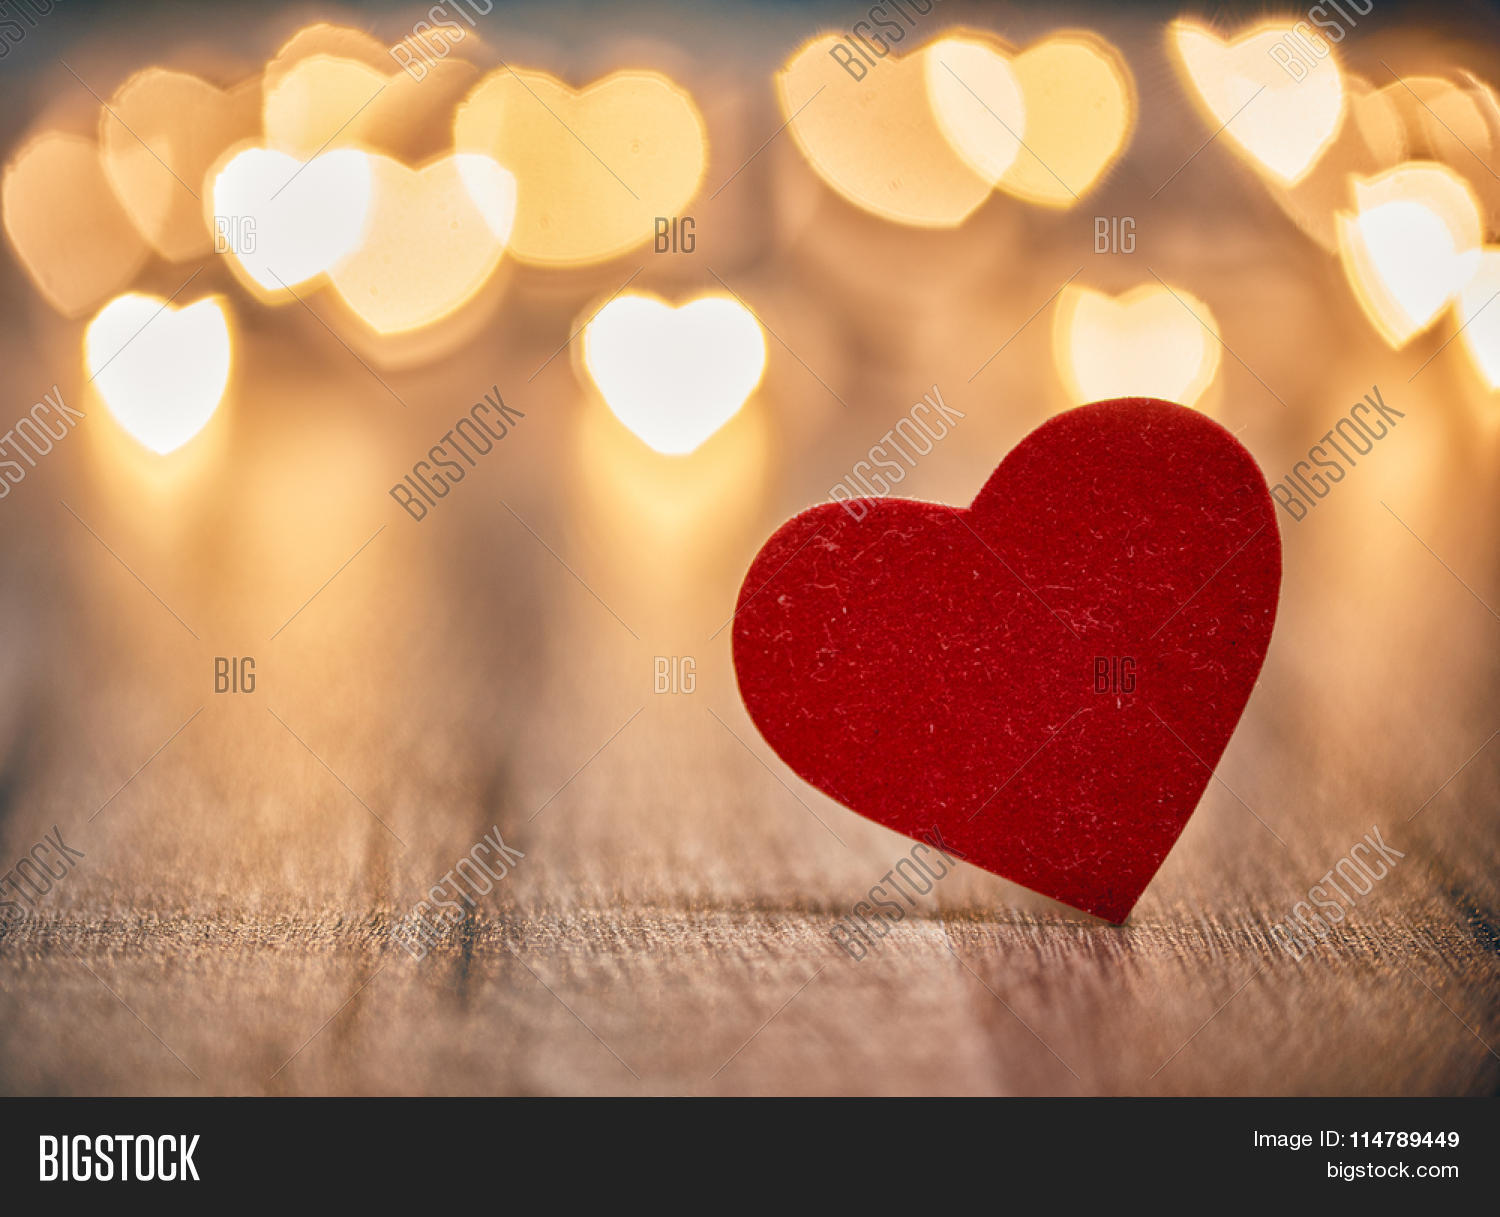 Garland Lights On Wooden Rustic Background Valentines Day With Hearts The Concept Of